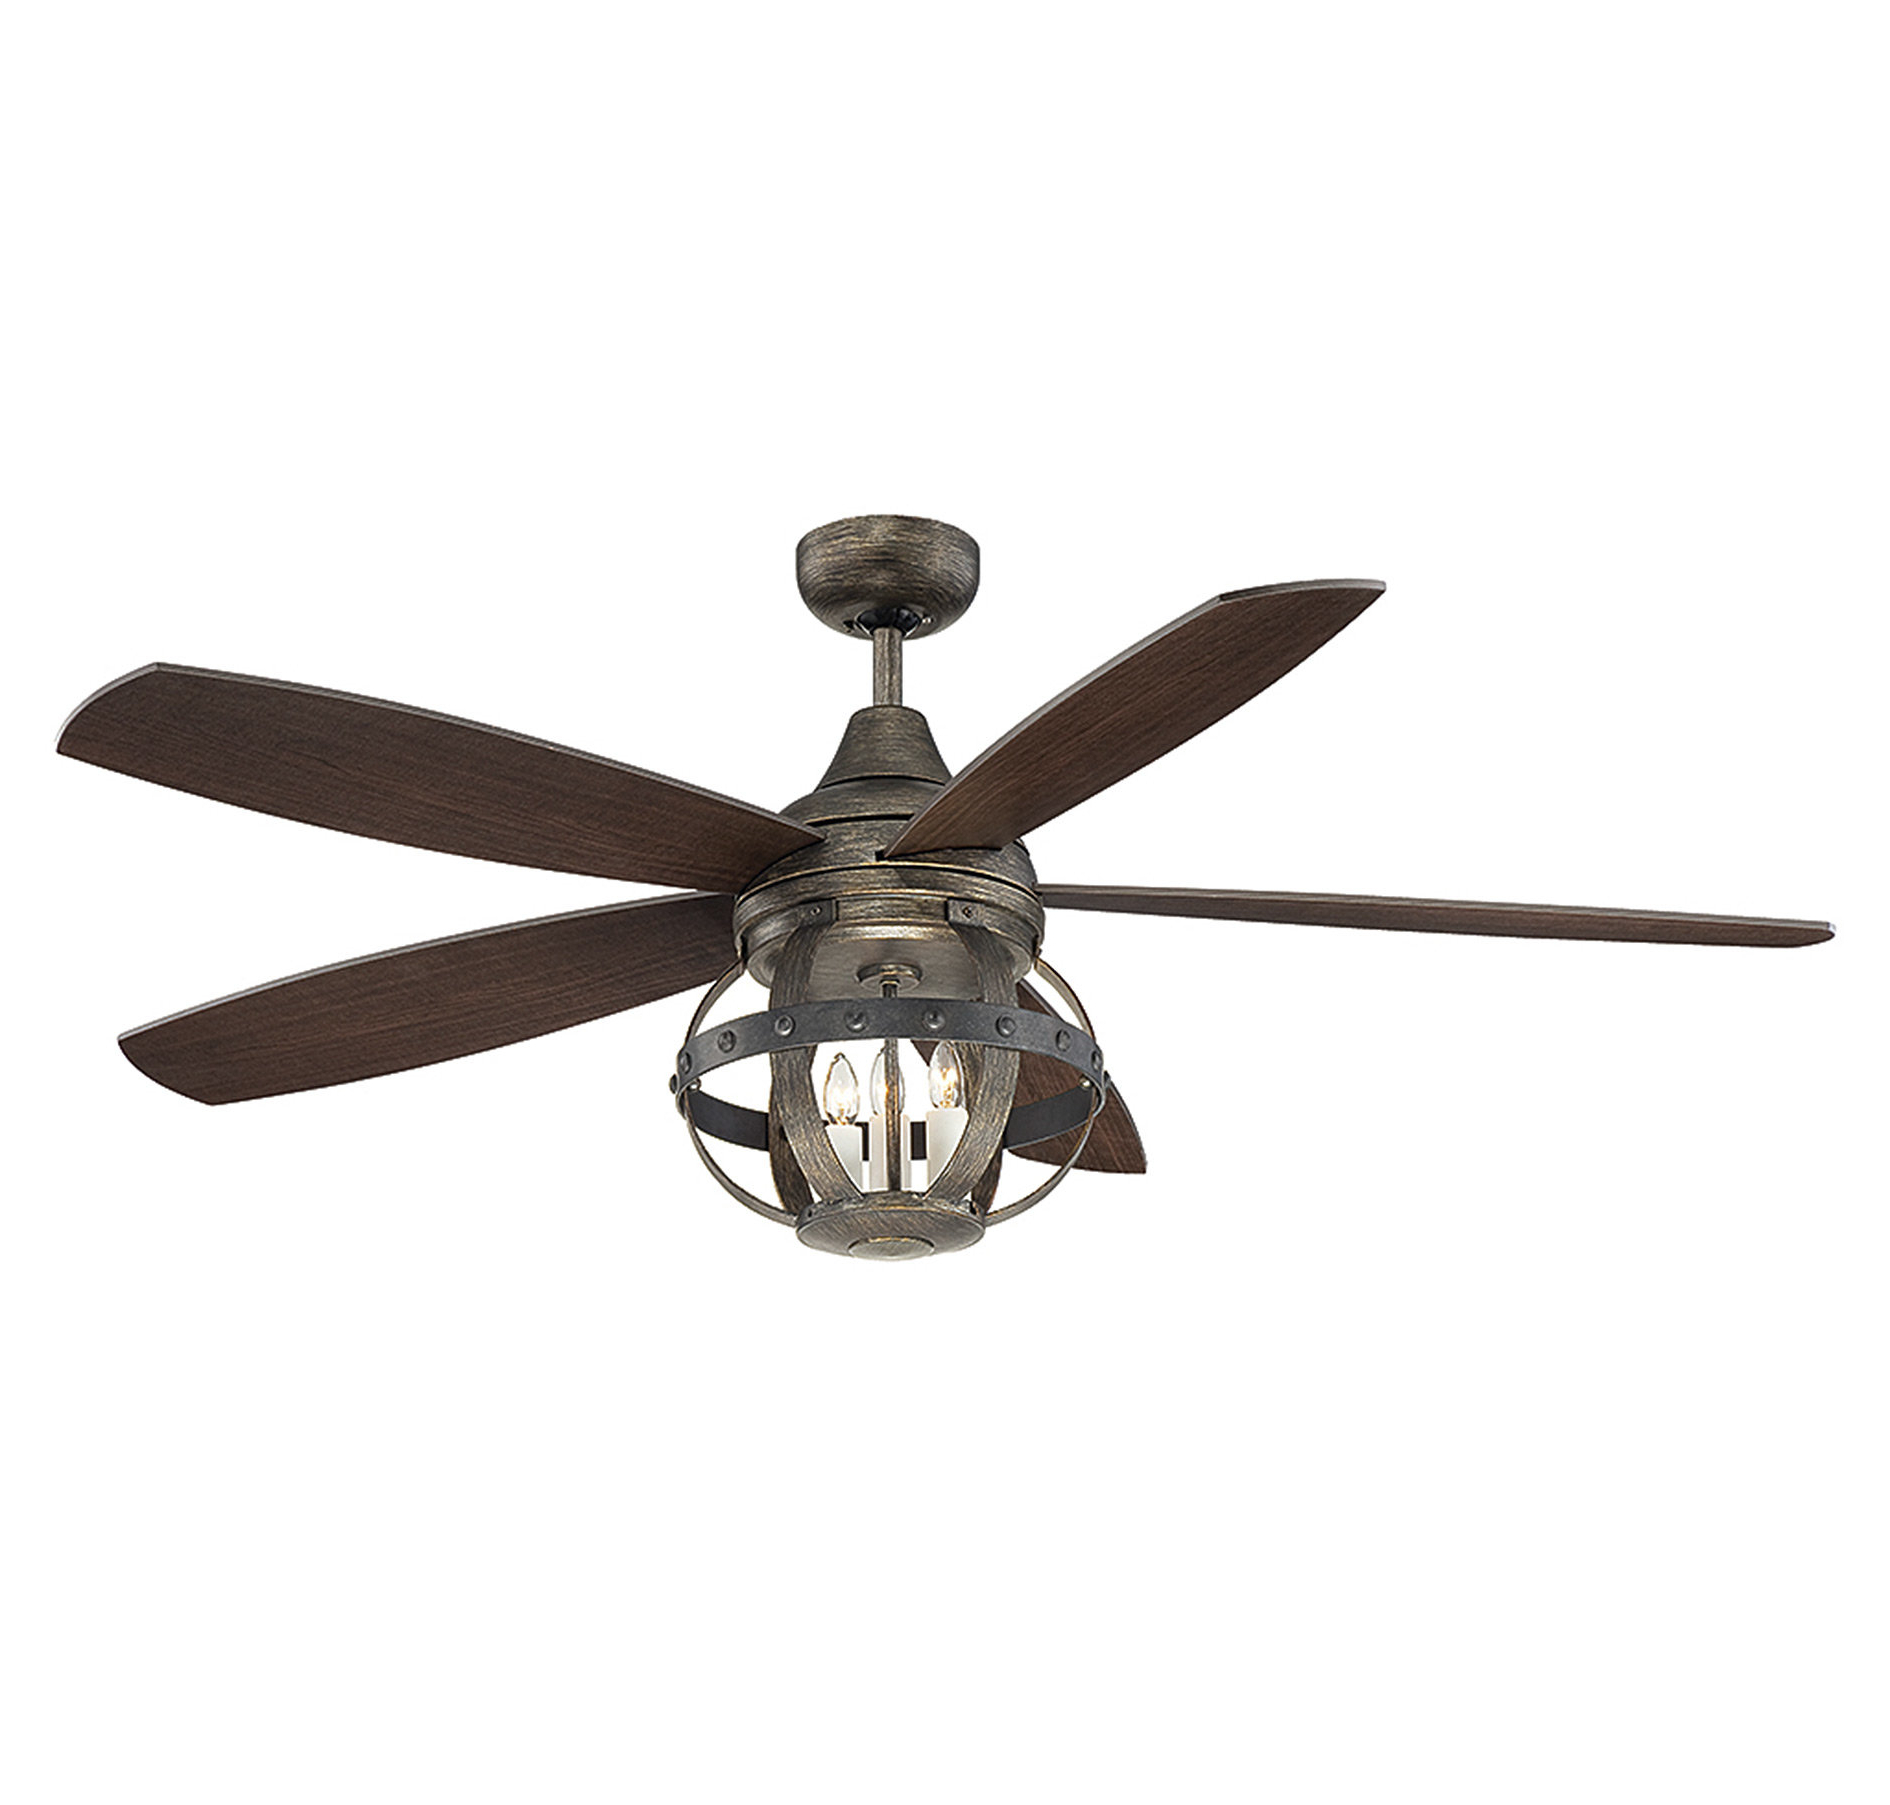 "Most Recently Released Kyla 5 Blade Ceiling Fans In 52"" Wilburton 5 Blade Ceiling Fan With Remote, Light Kit (View 10 of 20)"